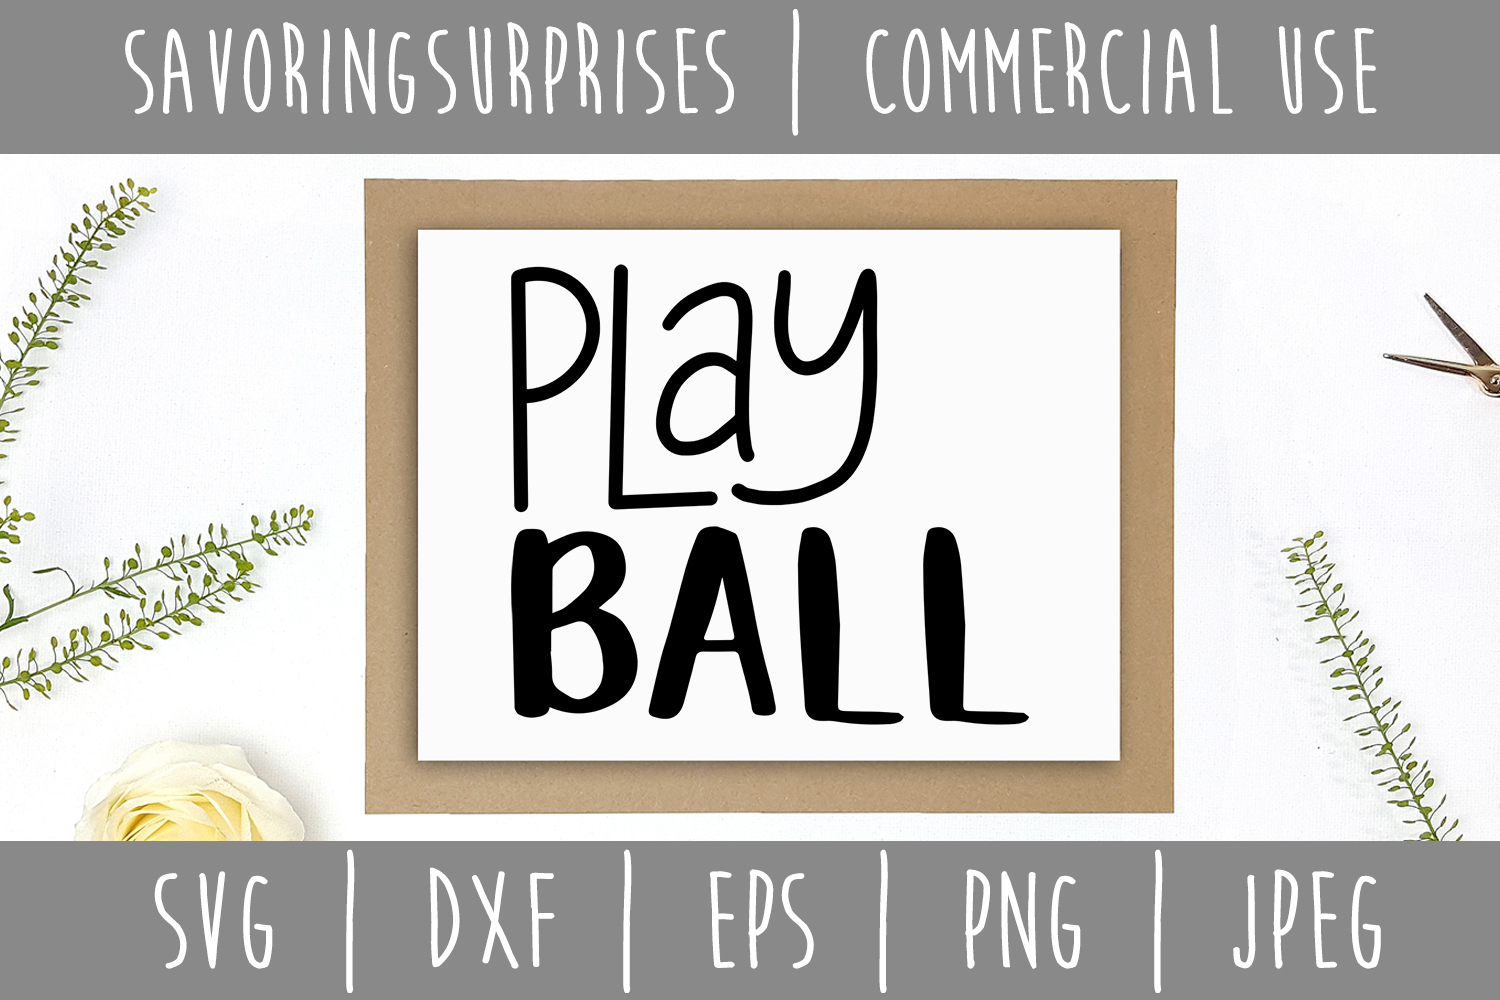 Play Ball SVG, DXF, EPS, PNG, JPEG example image 3